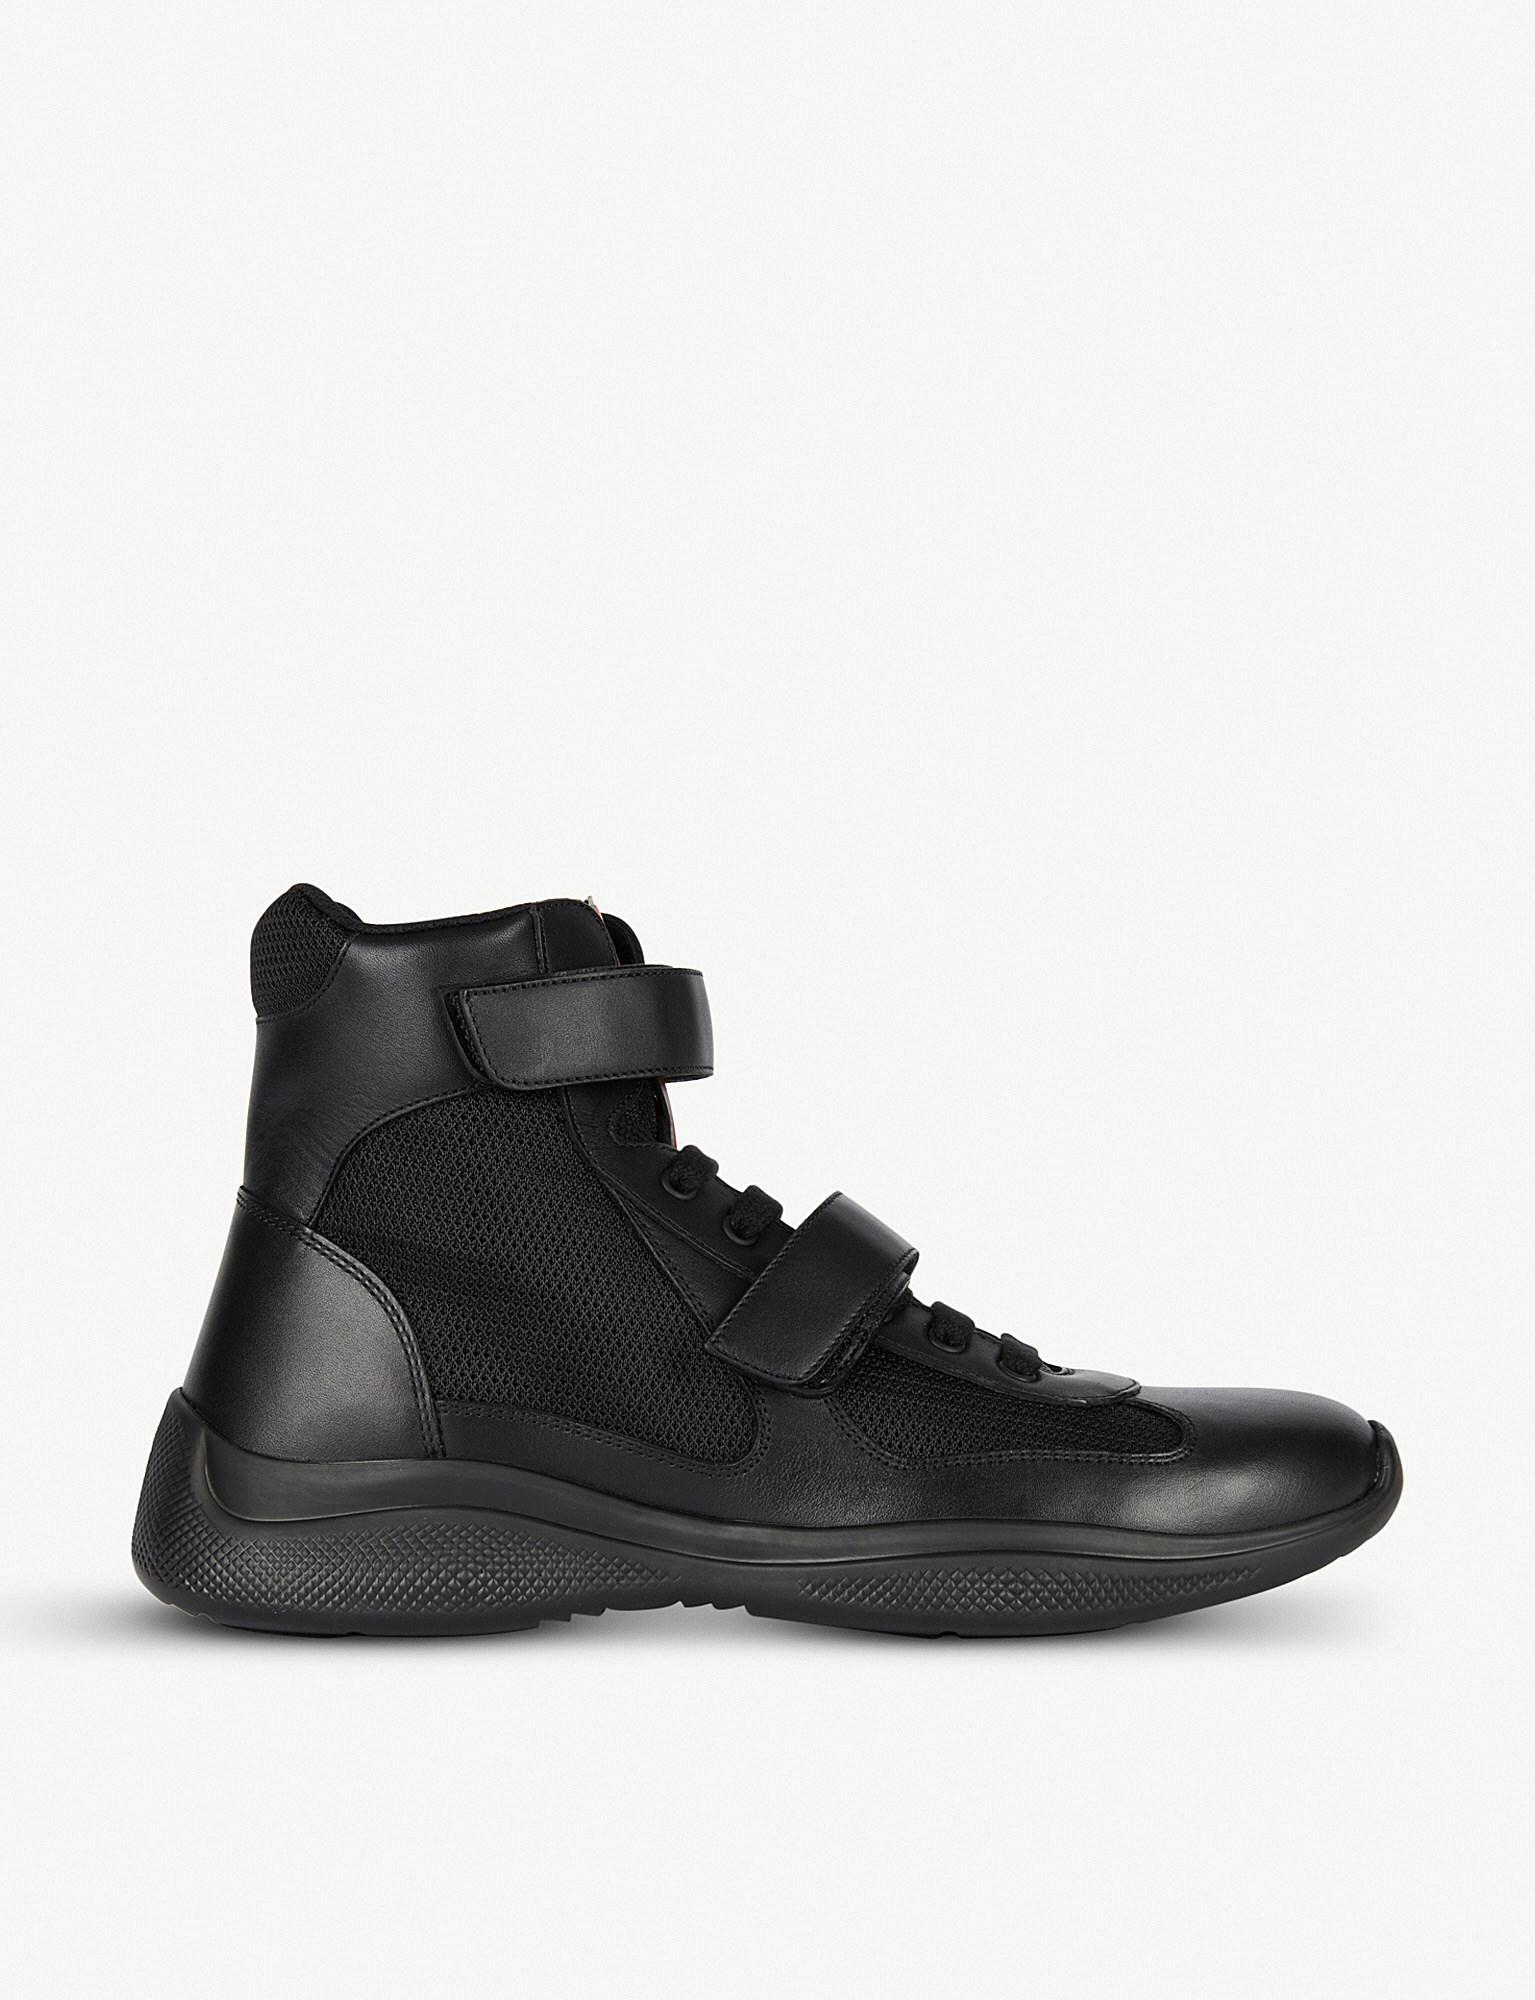 3f0841ca6104f Lyst - Prada Leather And Mesh High-top Trainers in Black for Men